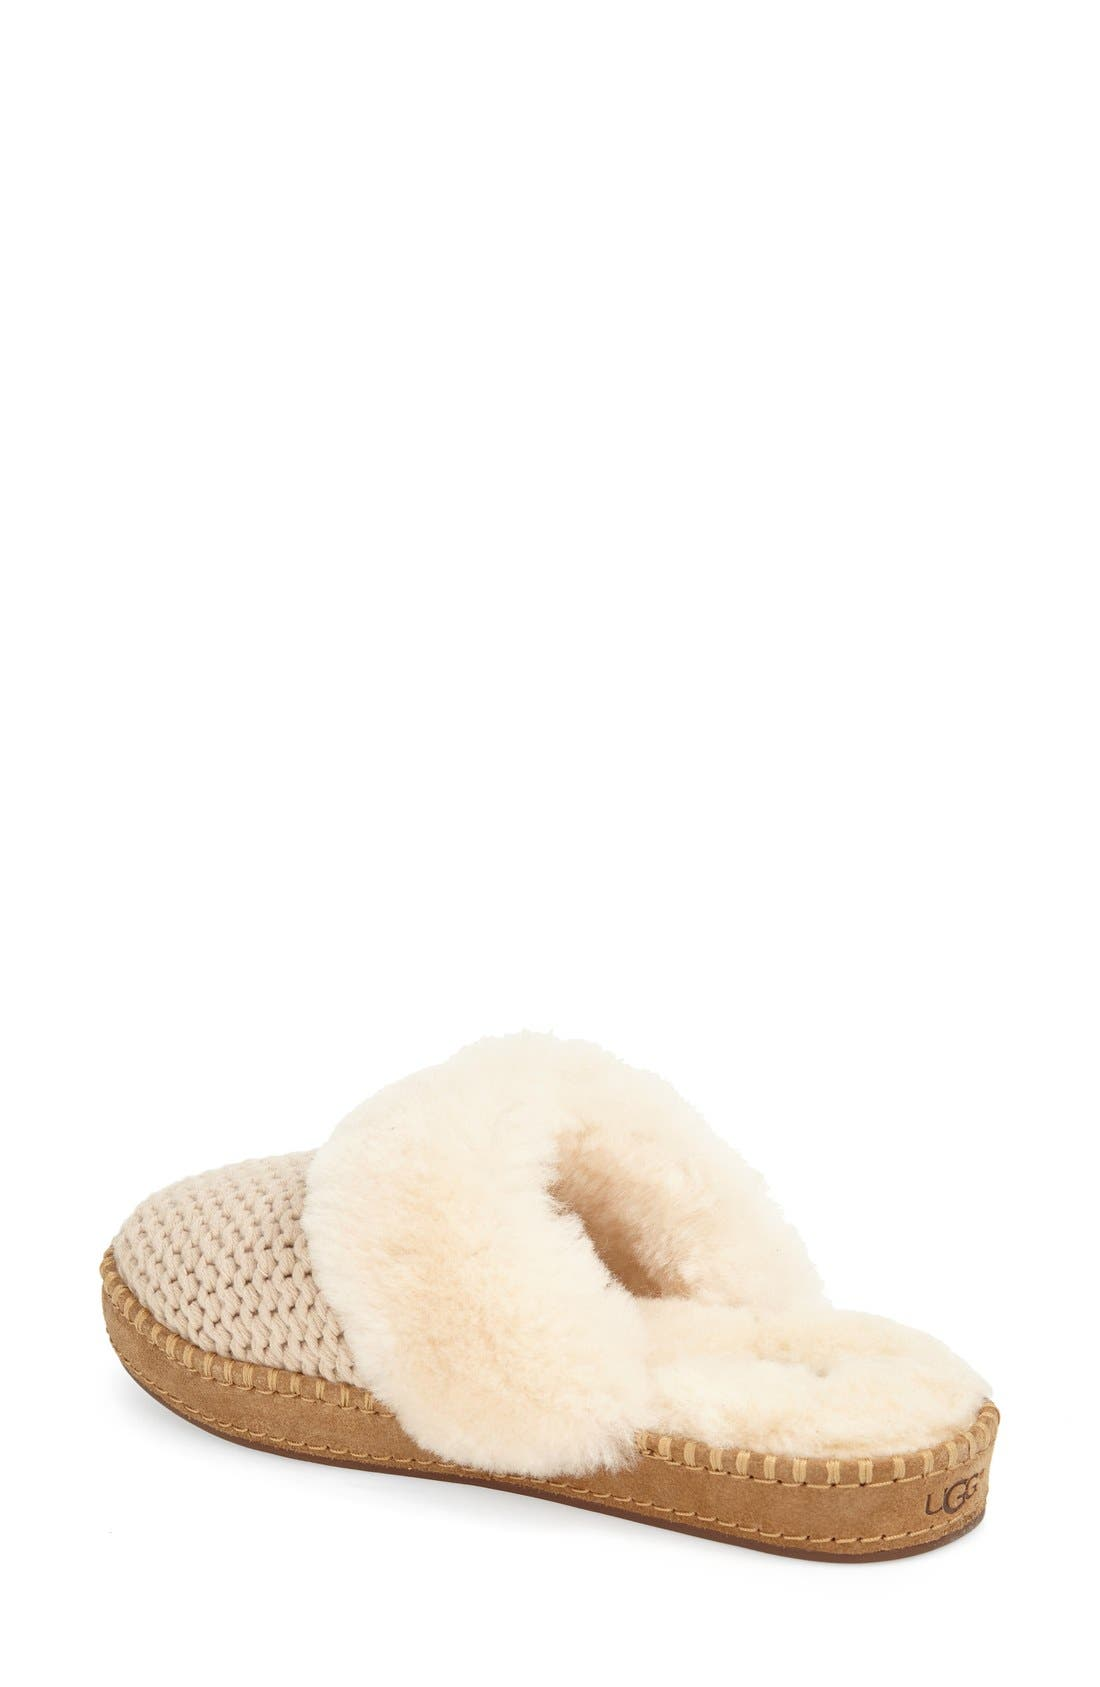 Aira Knit Scuff Slipper,                             Alternate thumbnail 2, color,                             900